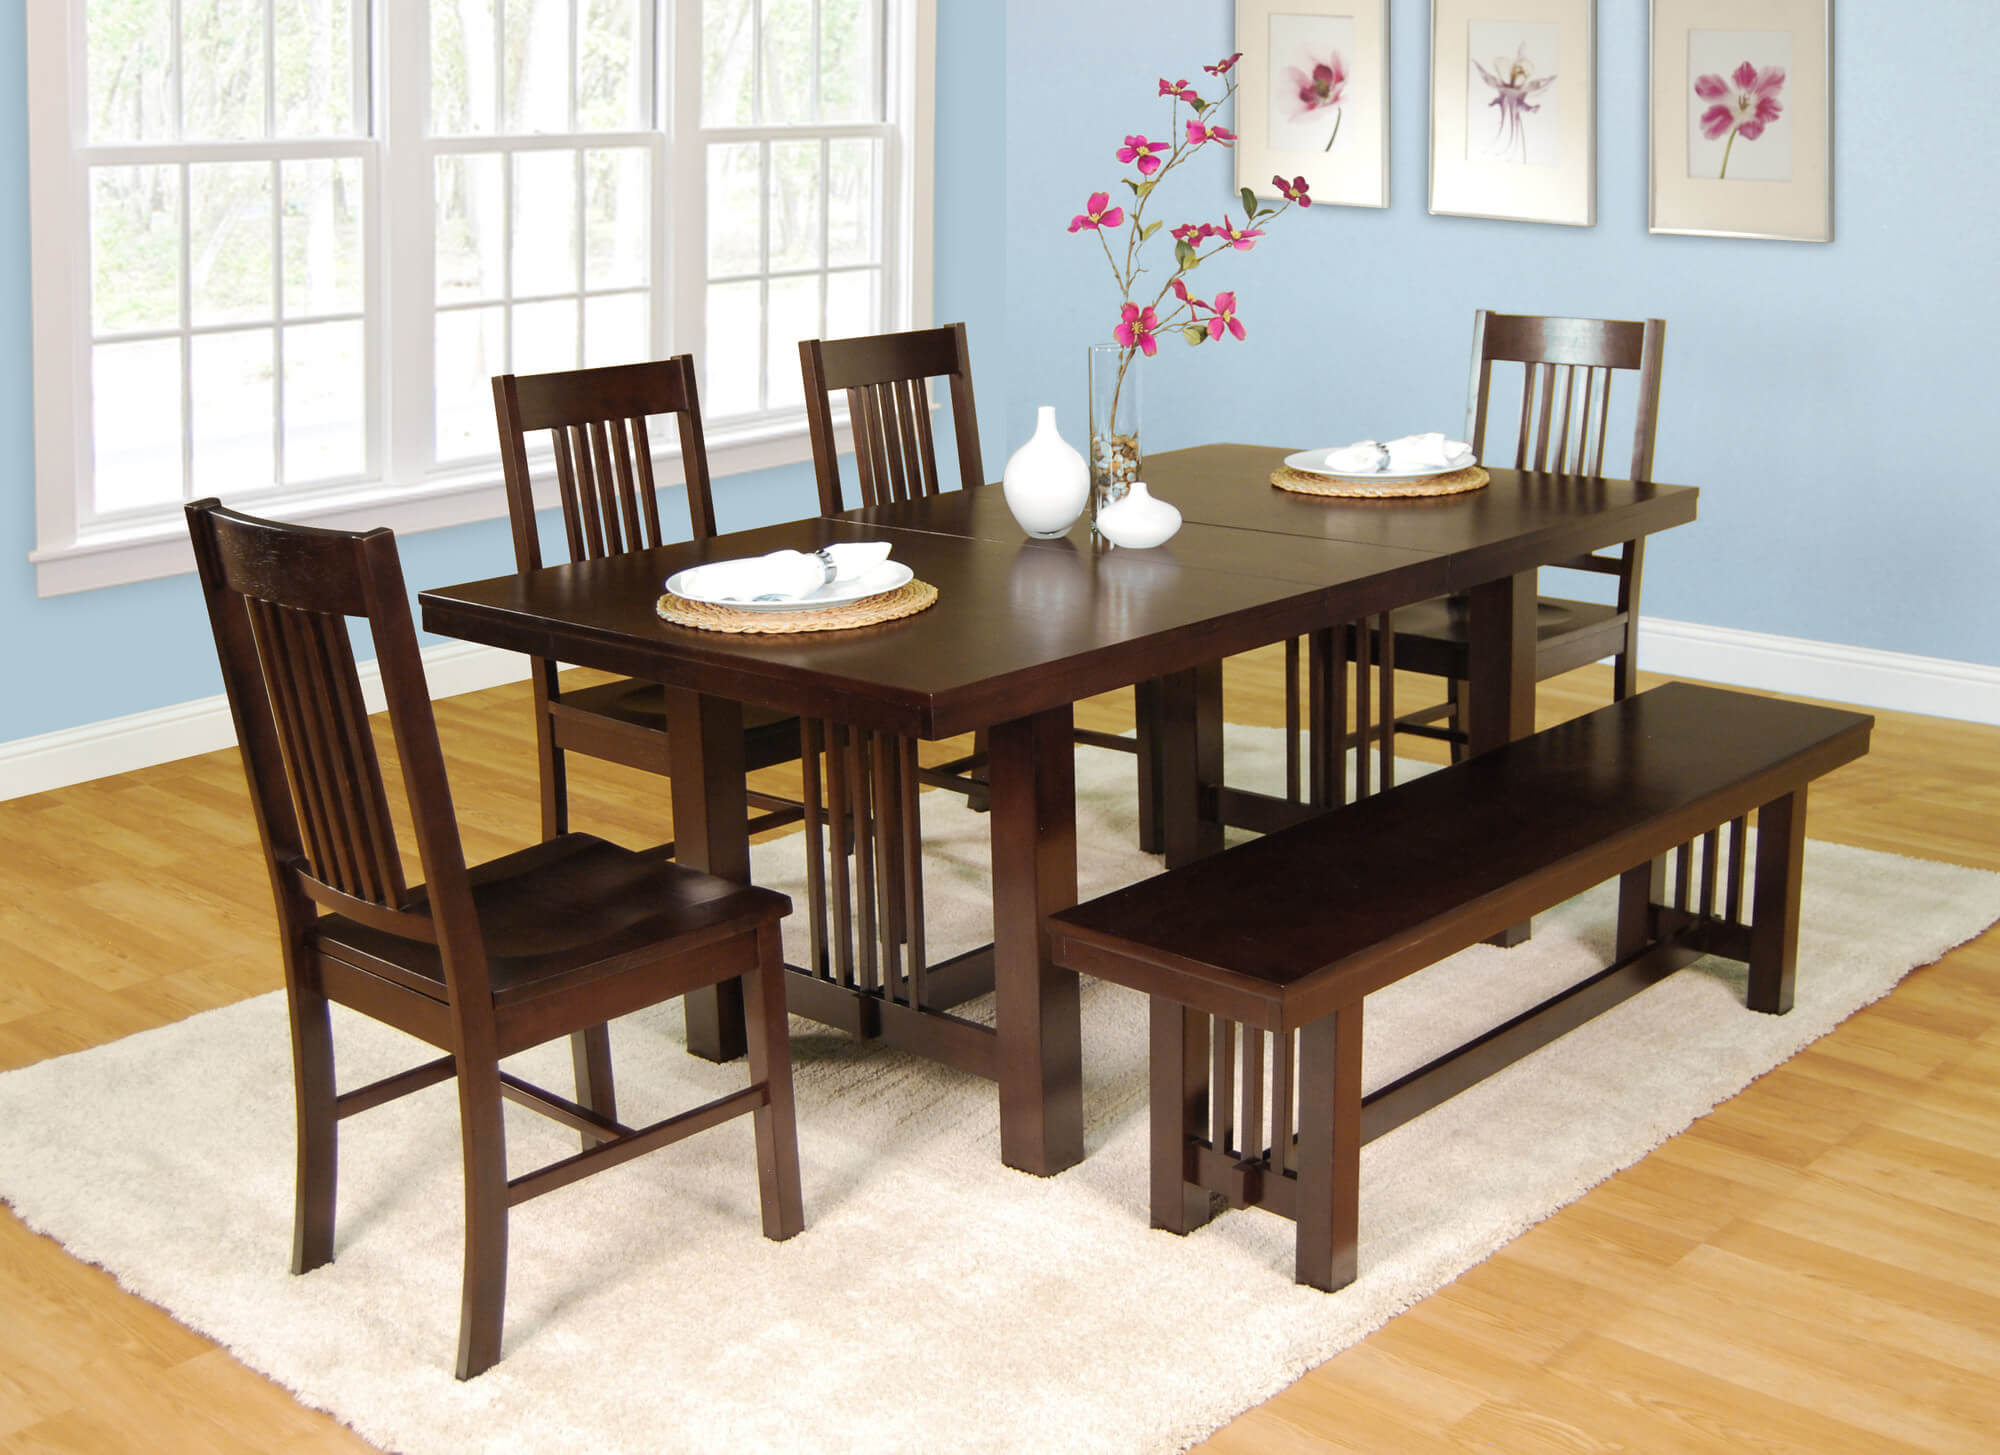 Hereu0027s A Very Solid Dining Set With Bench. Table Can Be Extended With A  Center